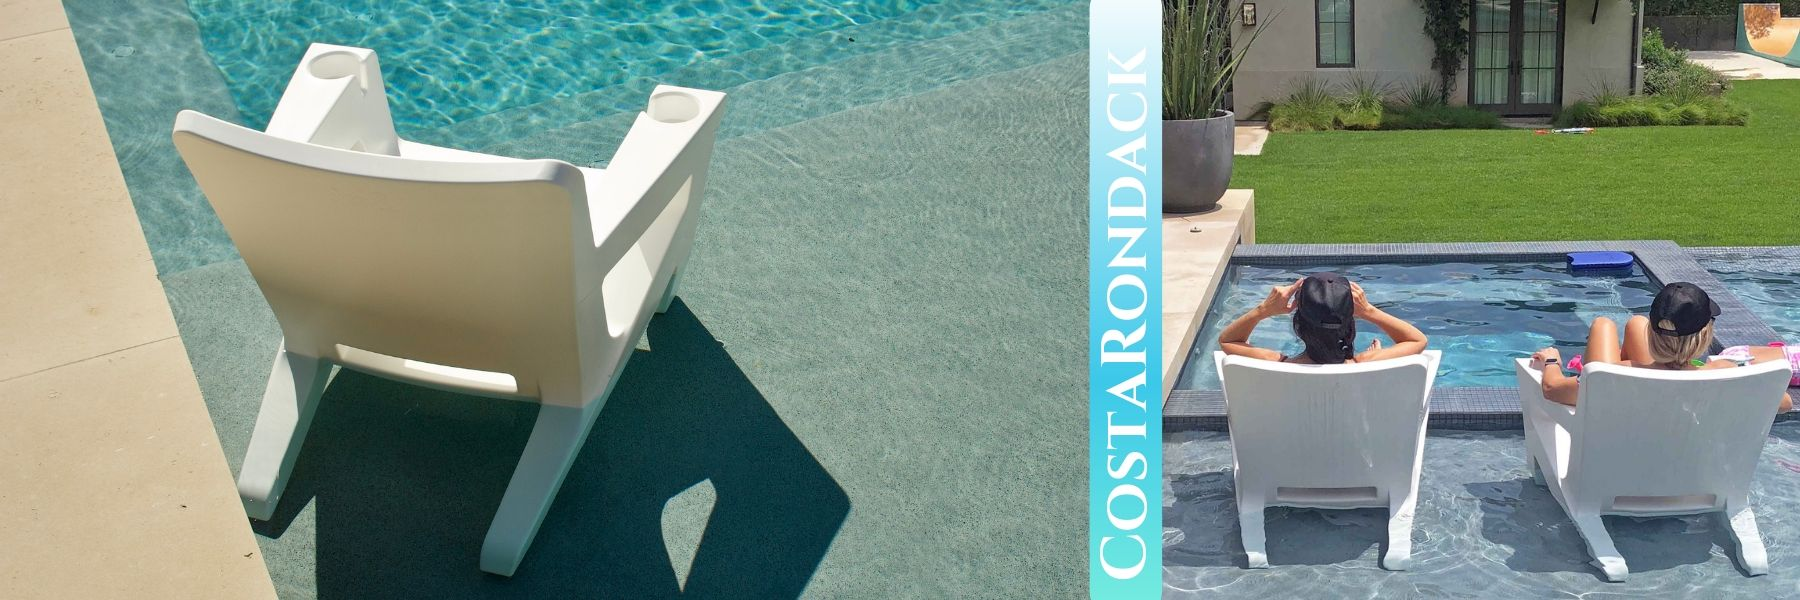 costarondack chair on the pool sunshelf